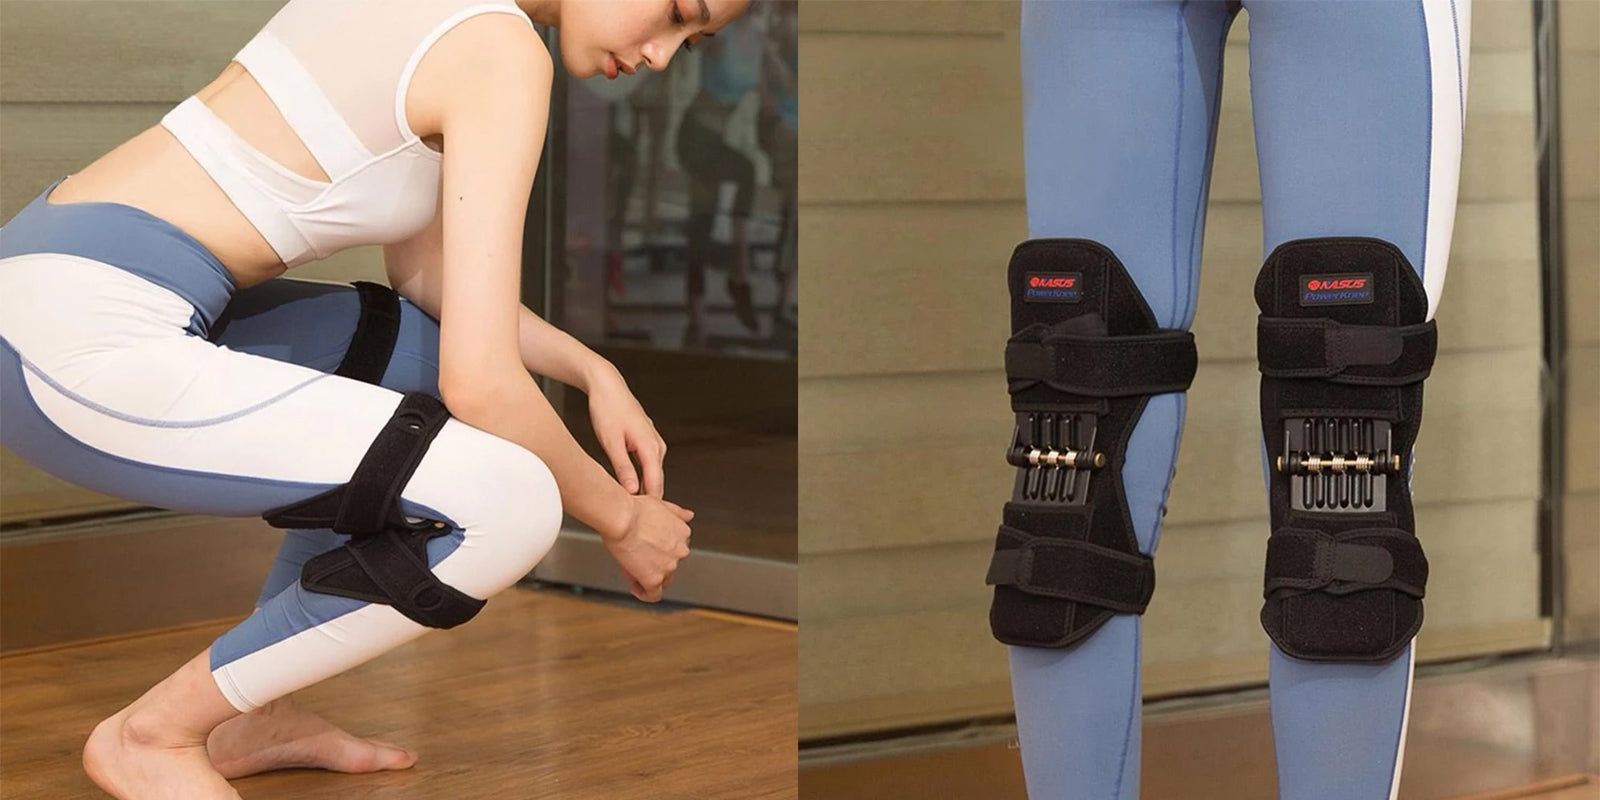 What is Power Knee Stabilizer Pads